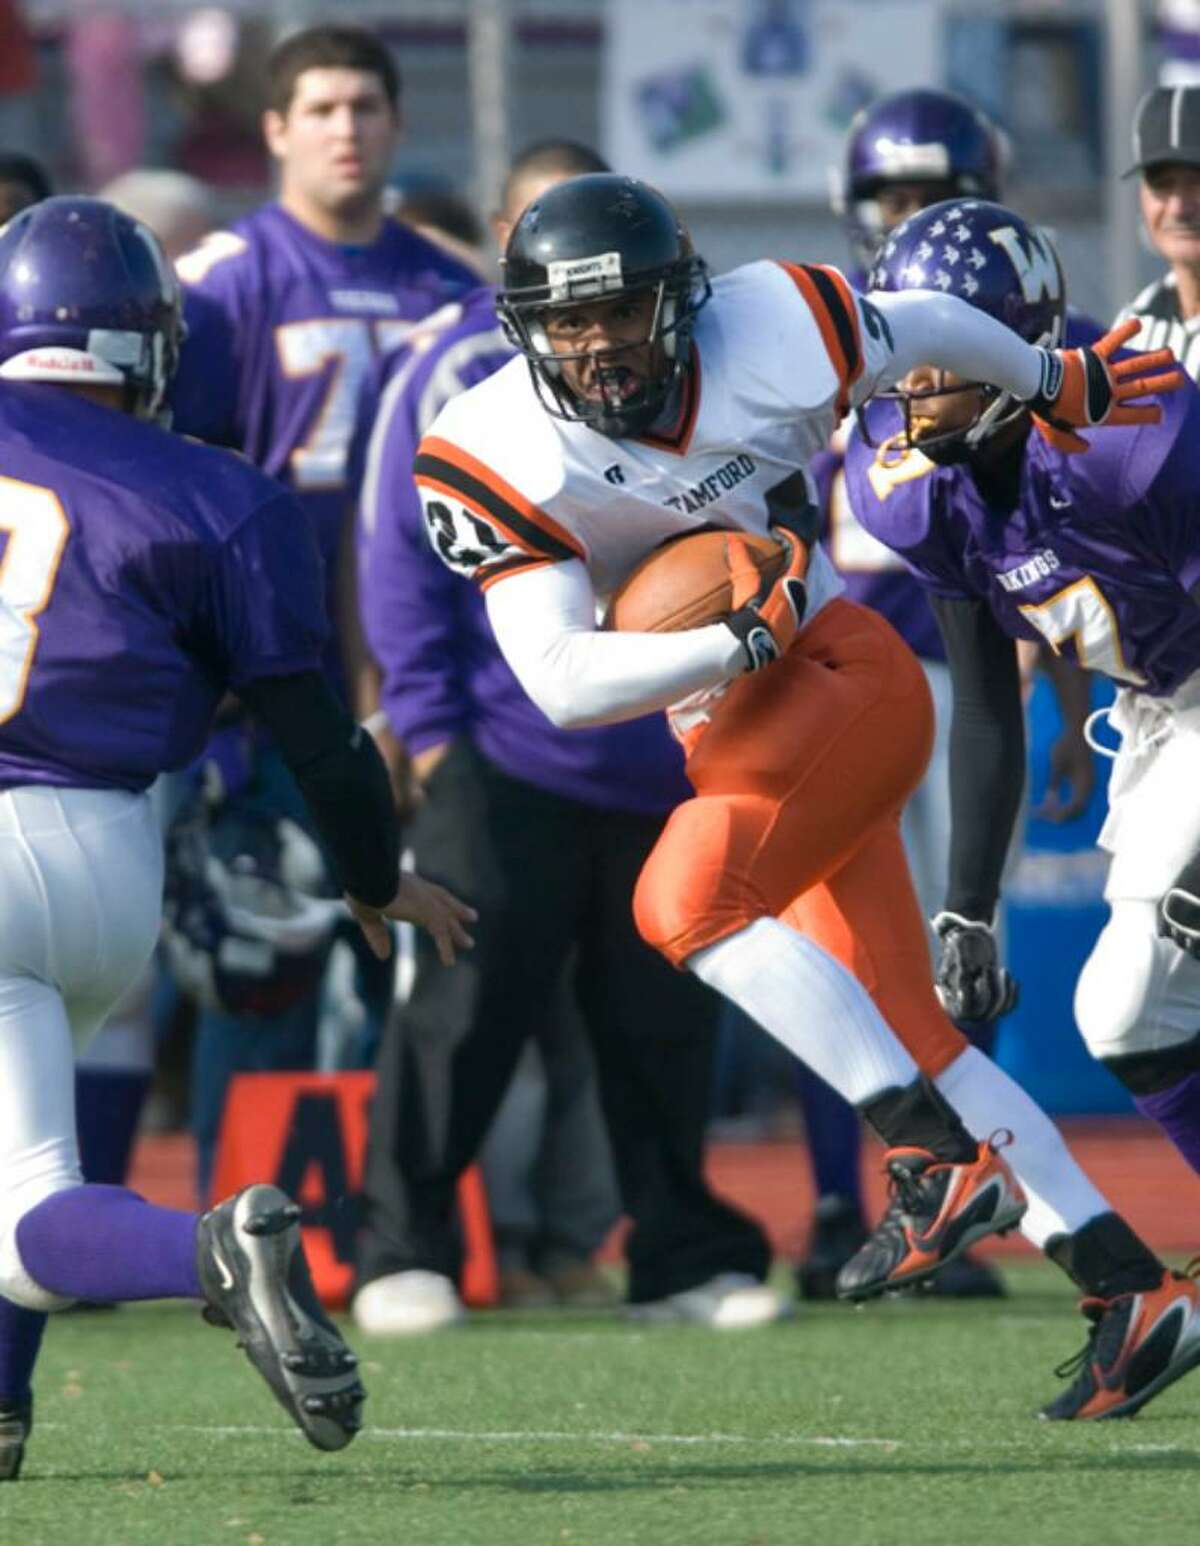 Stamford_112307_ Stamford's Marcus Dixon, right, runs the ball downfield, while Westhill's Ronald Thompson, left, looks to make a tackle during a football game at Westhill High School in Stamford, Conn. on Thanksgiving Day, Thursday, Nov. 22, 2007. Chris Preovolos/Staff photo Staff Photo Chris Preovolos